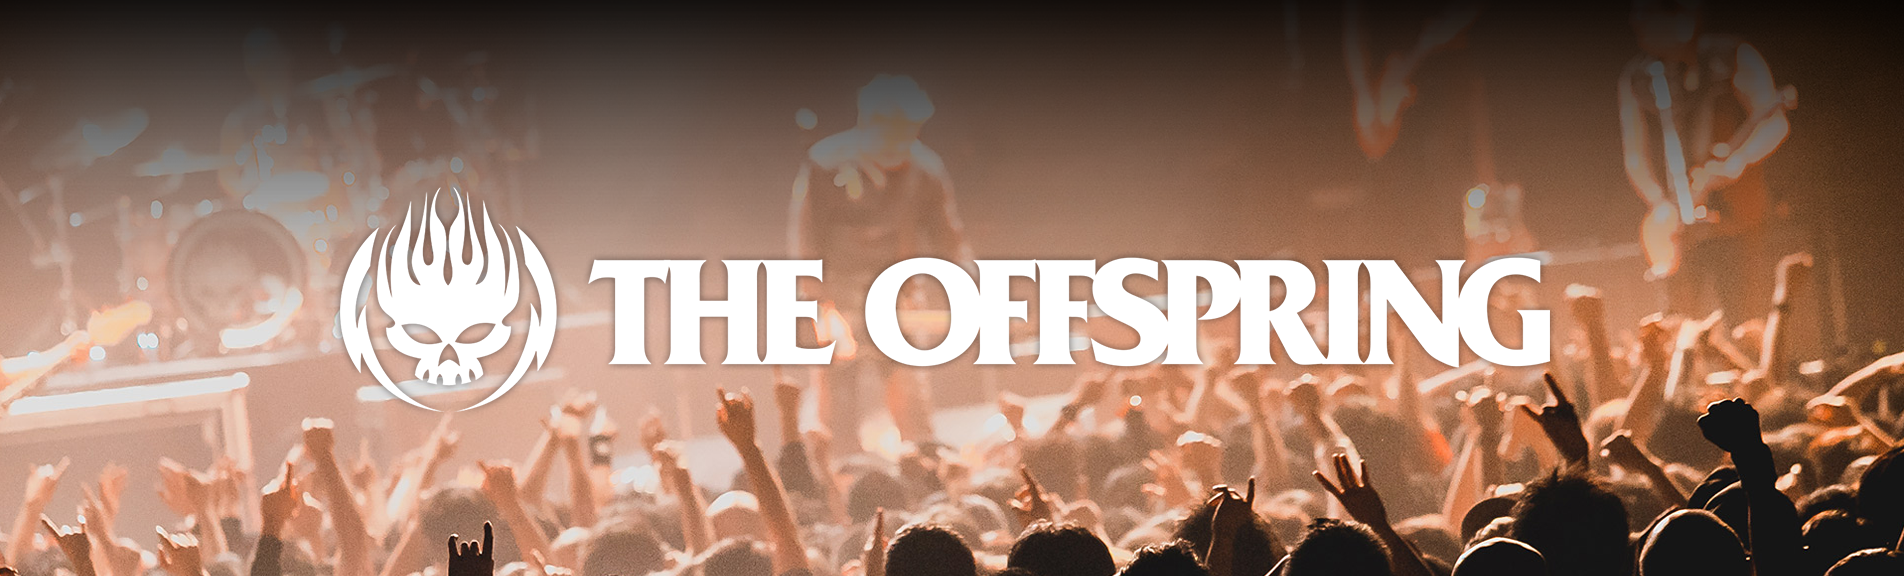 The Offspring banner